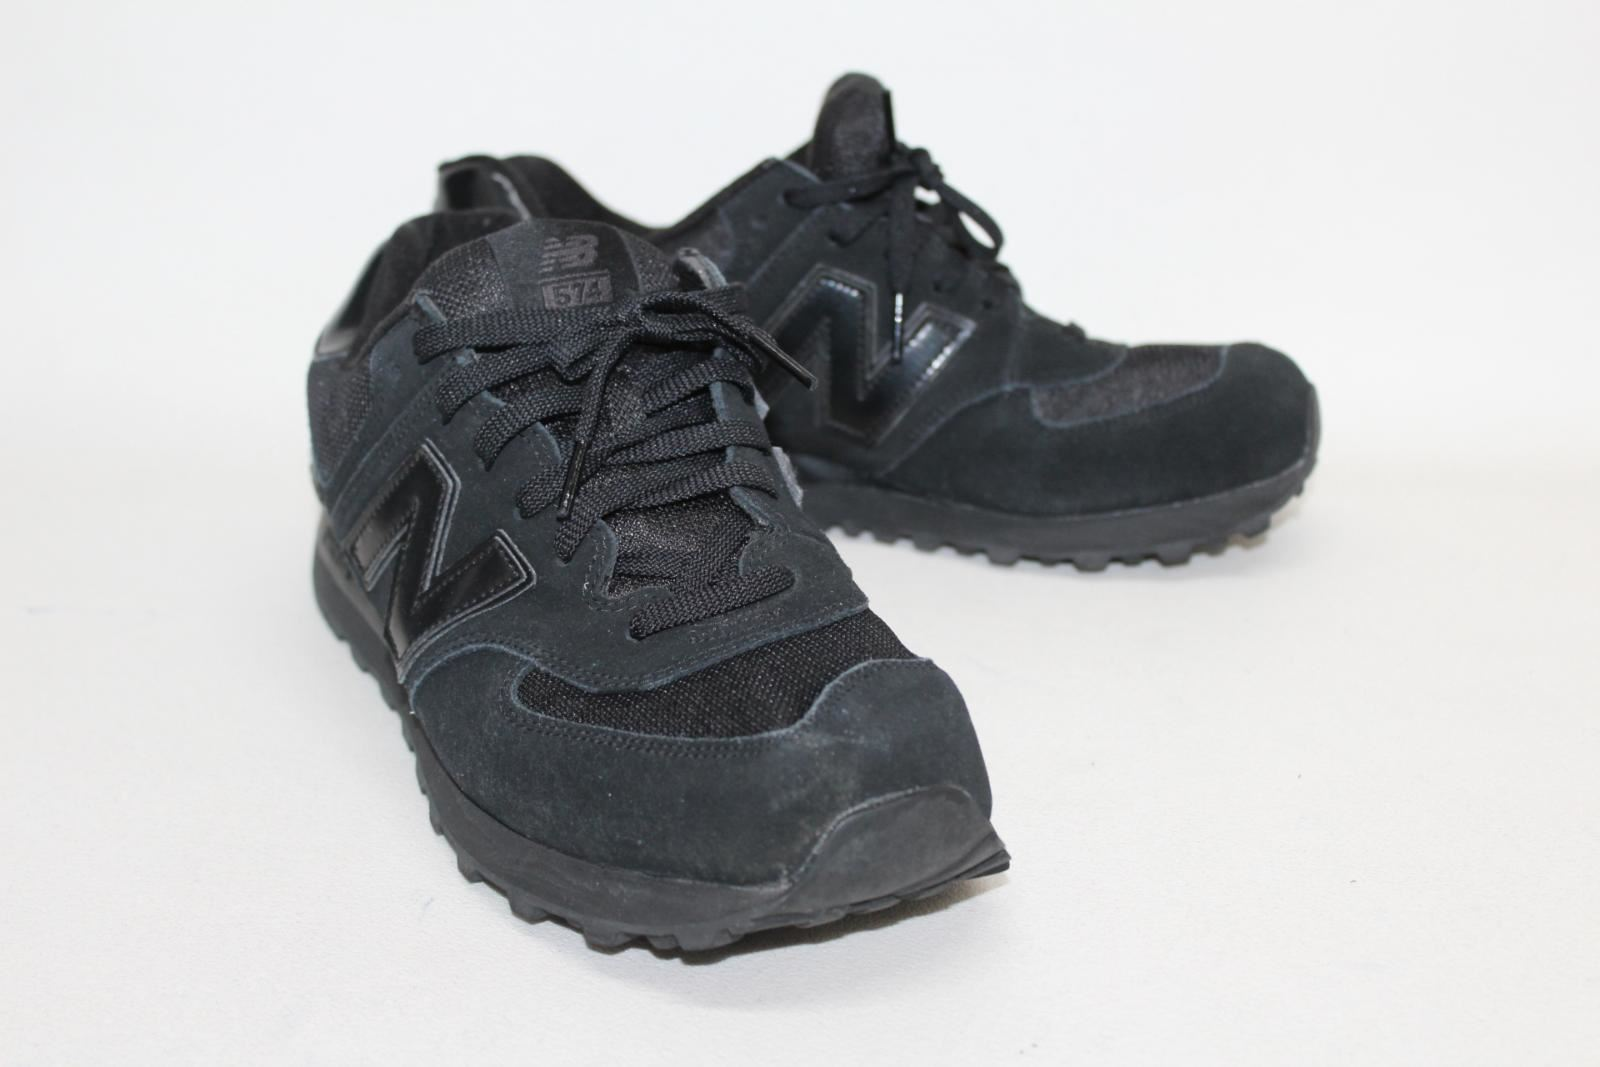 pretty nice 53f54 0edfd Details about BALANCE Men's Total Black 574 Trainers Training Running Shoes  UK10.5 EU44.5 NEW